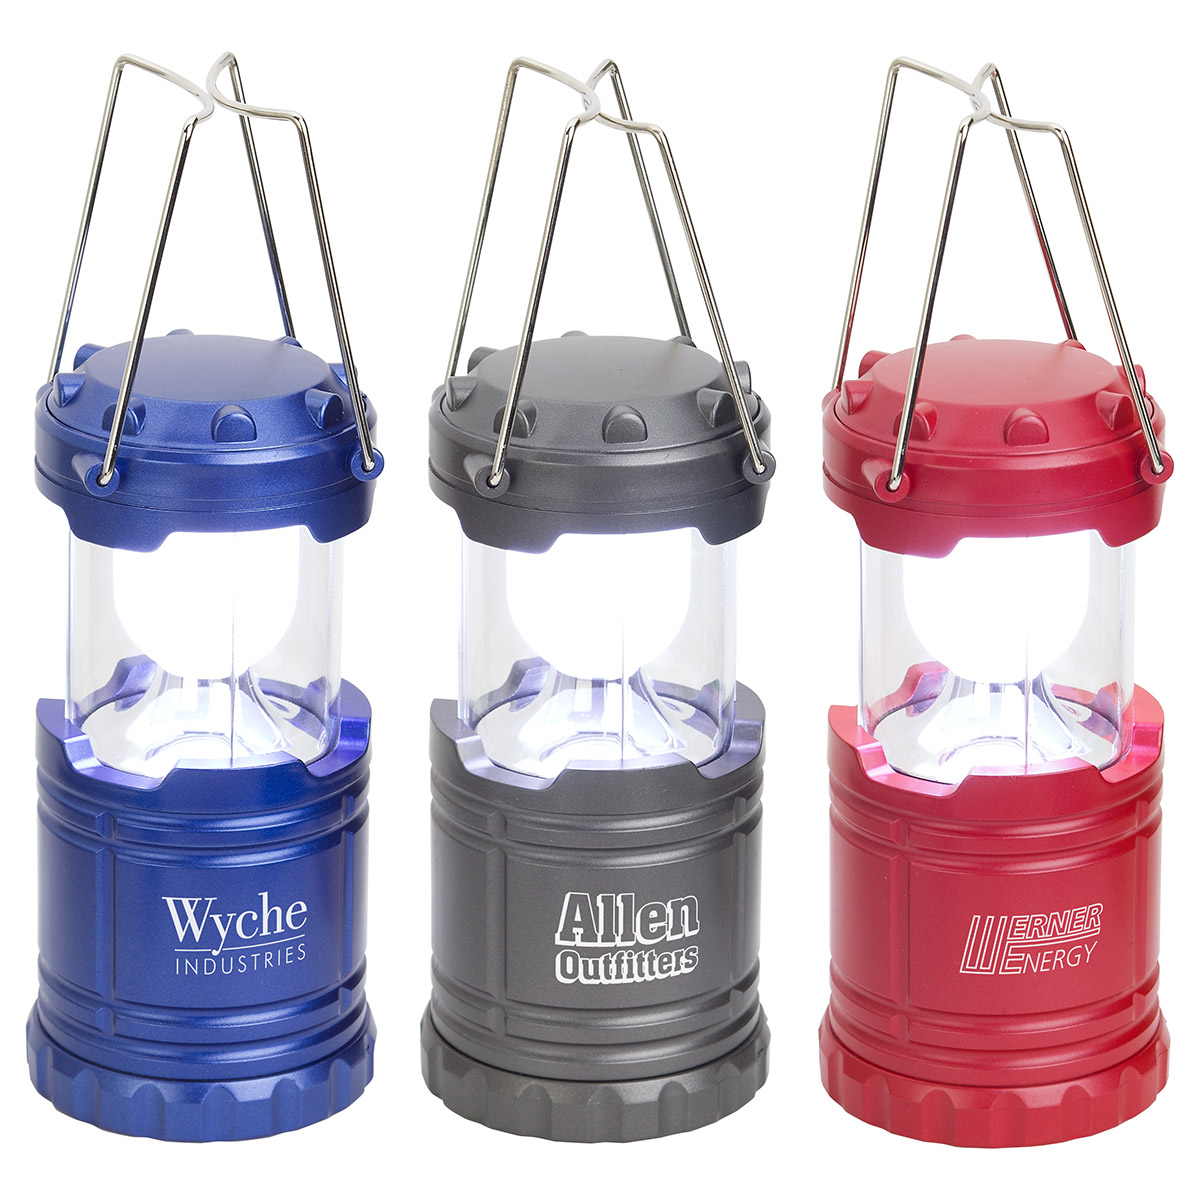 Retro Pop Up Lantern, WLT-RL17 - 1 Colour Imprint